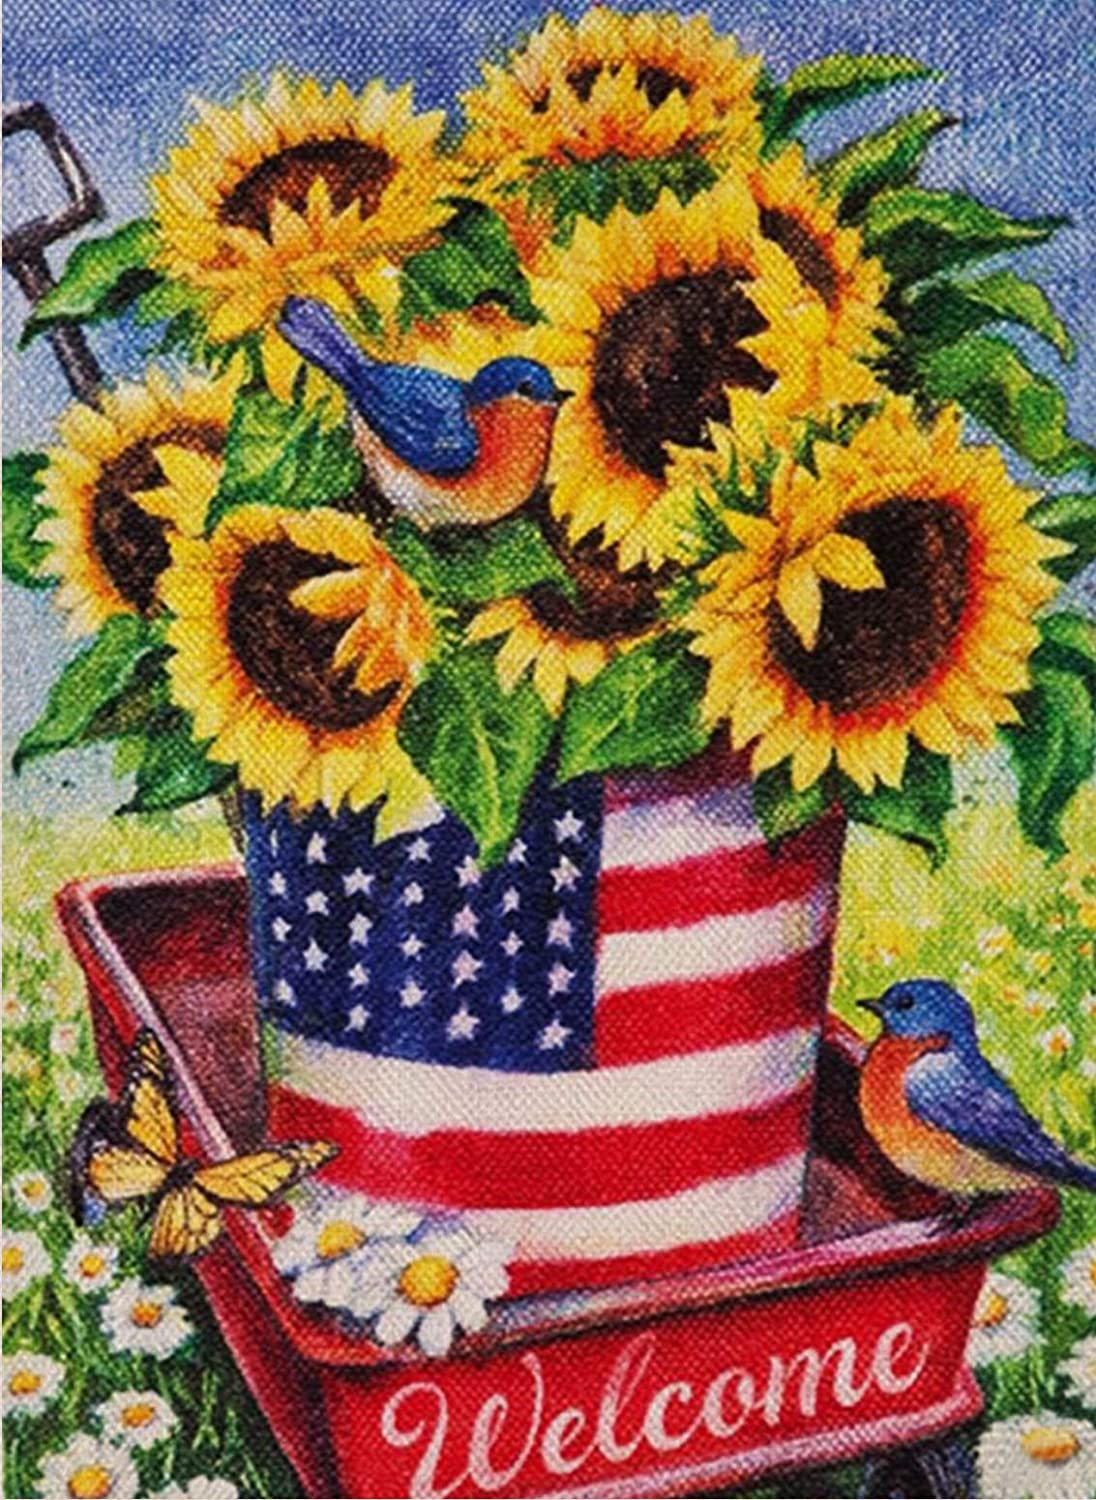 Covido Sunflowers Welcome Garden Flag, USA Home Decorative House Yard Patriotic Decor Sign Bird, Summer Fall American Outside Decoration Autumn Seasonal Outdoor Small July 4th Flag Double Sided 12x18